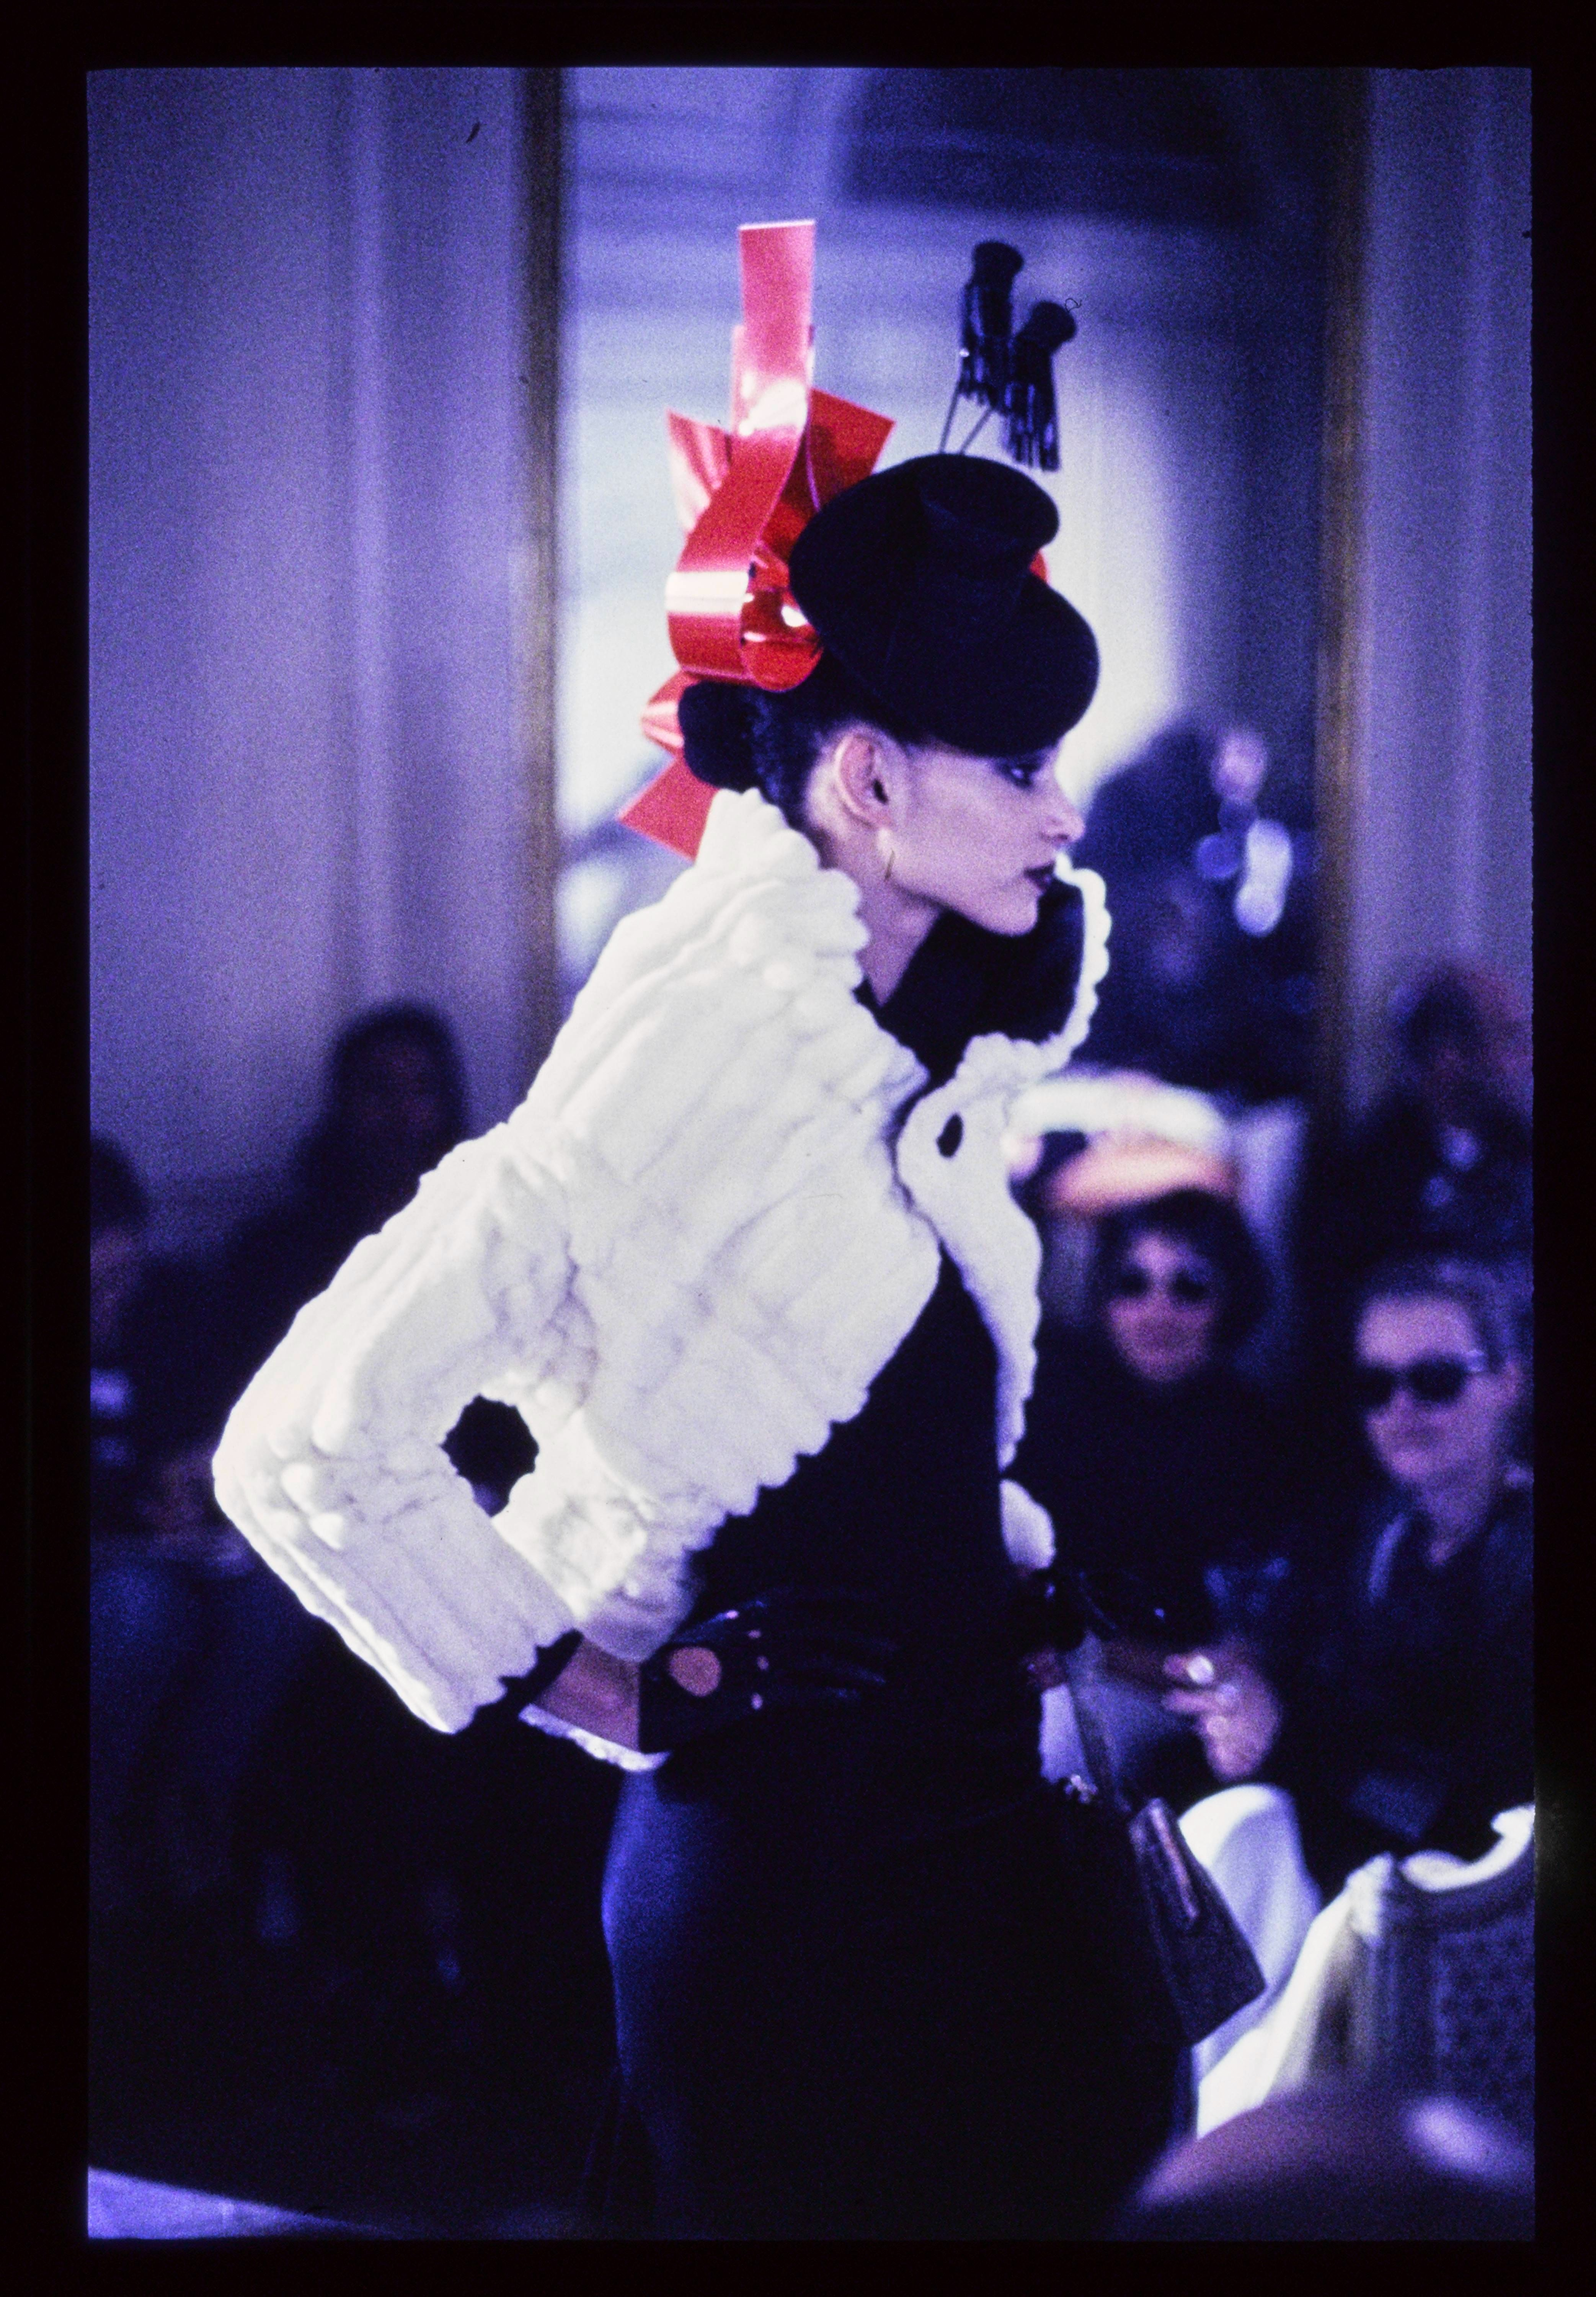 Tim Blanks' Top Fashion Shows of All-Time: John Galliano, Ready-to-Wear Autumn/Winter 1994 | Fashion Show Review, Tim's Take